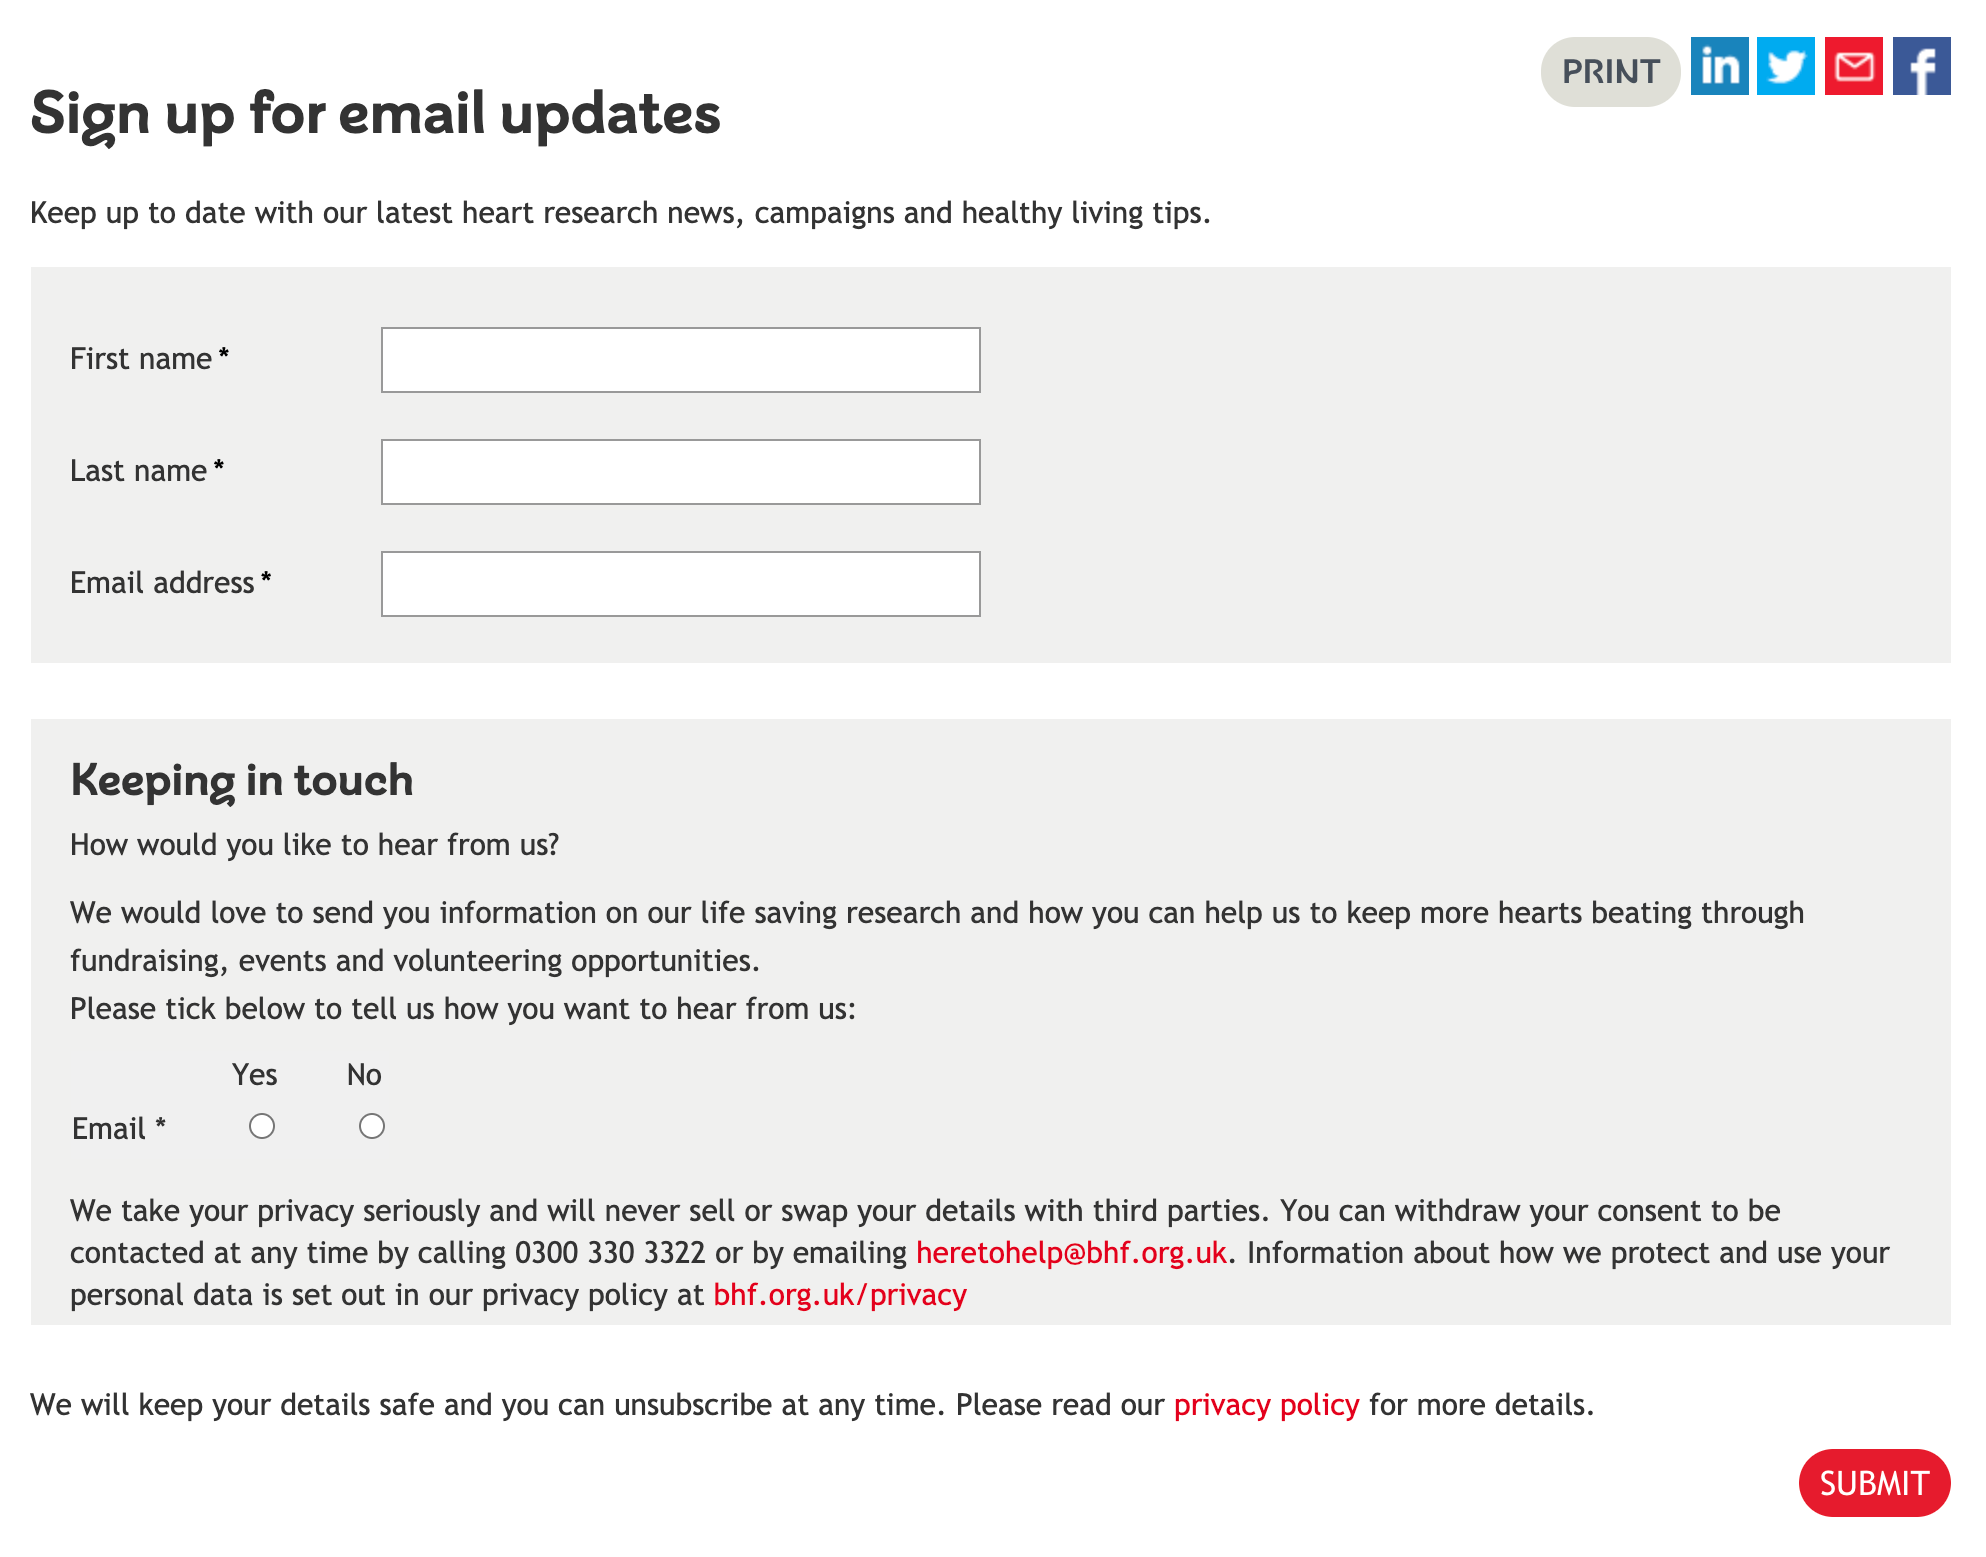 Image of British Heart Foundation's sign-up form for email updates. It also shows the BHF's double opt-in process.